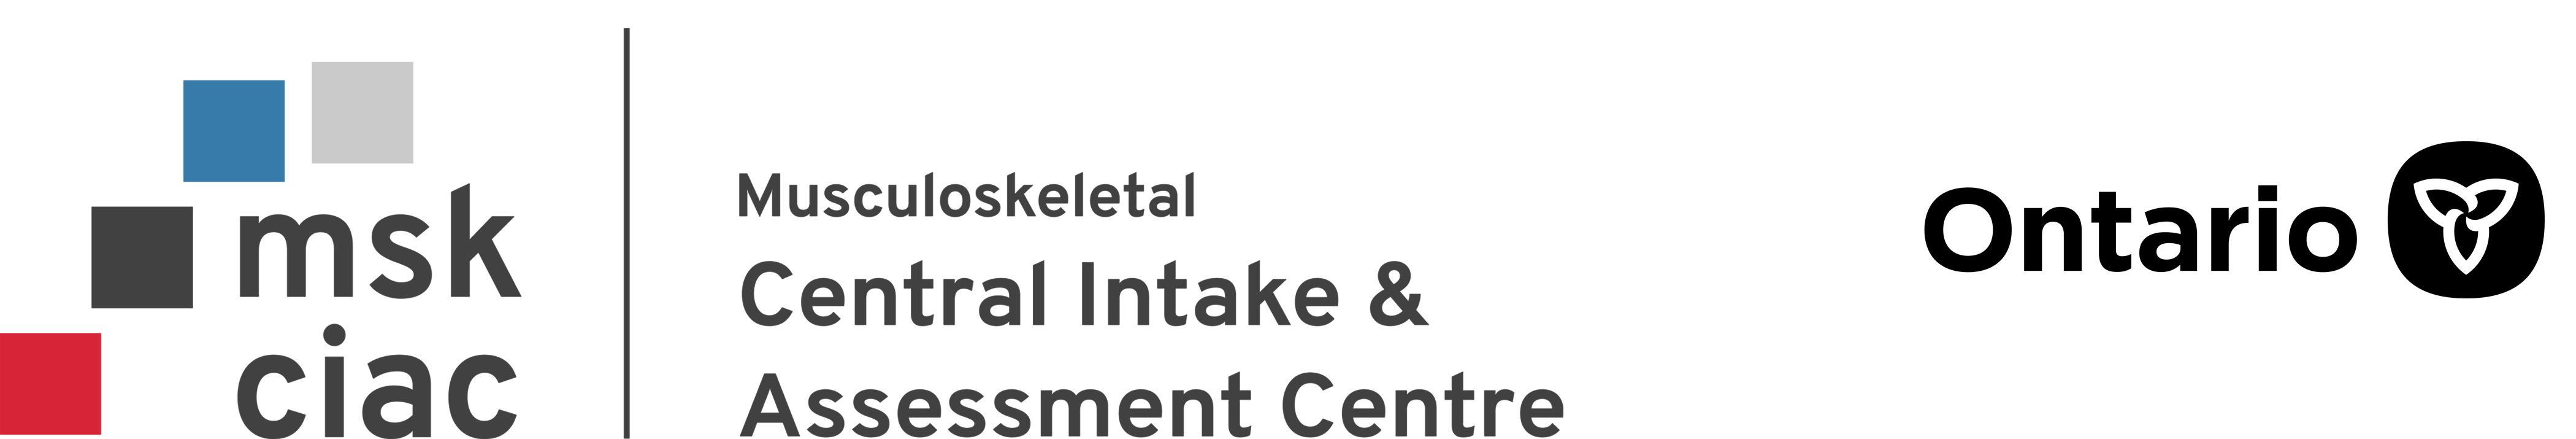 Program name Musculoskeletal Central intake and Assessment Centre